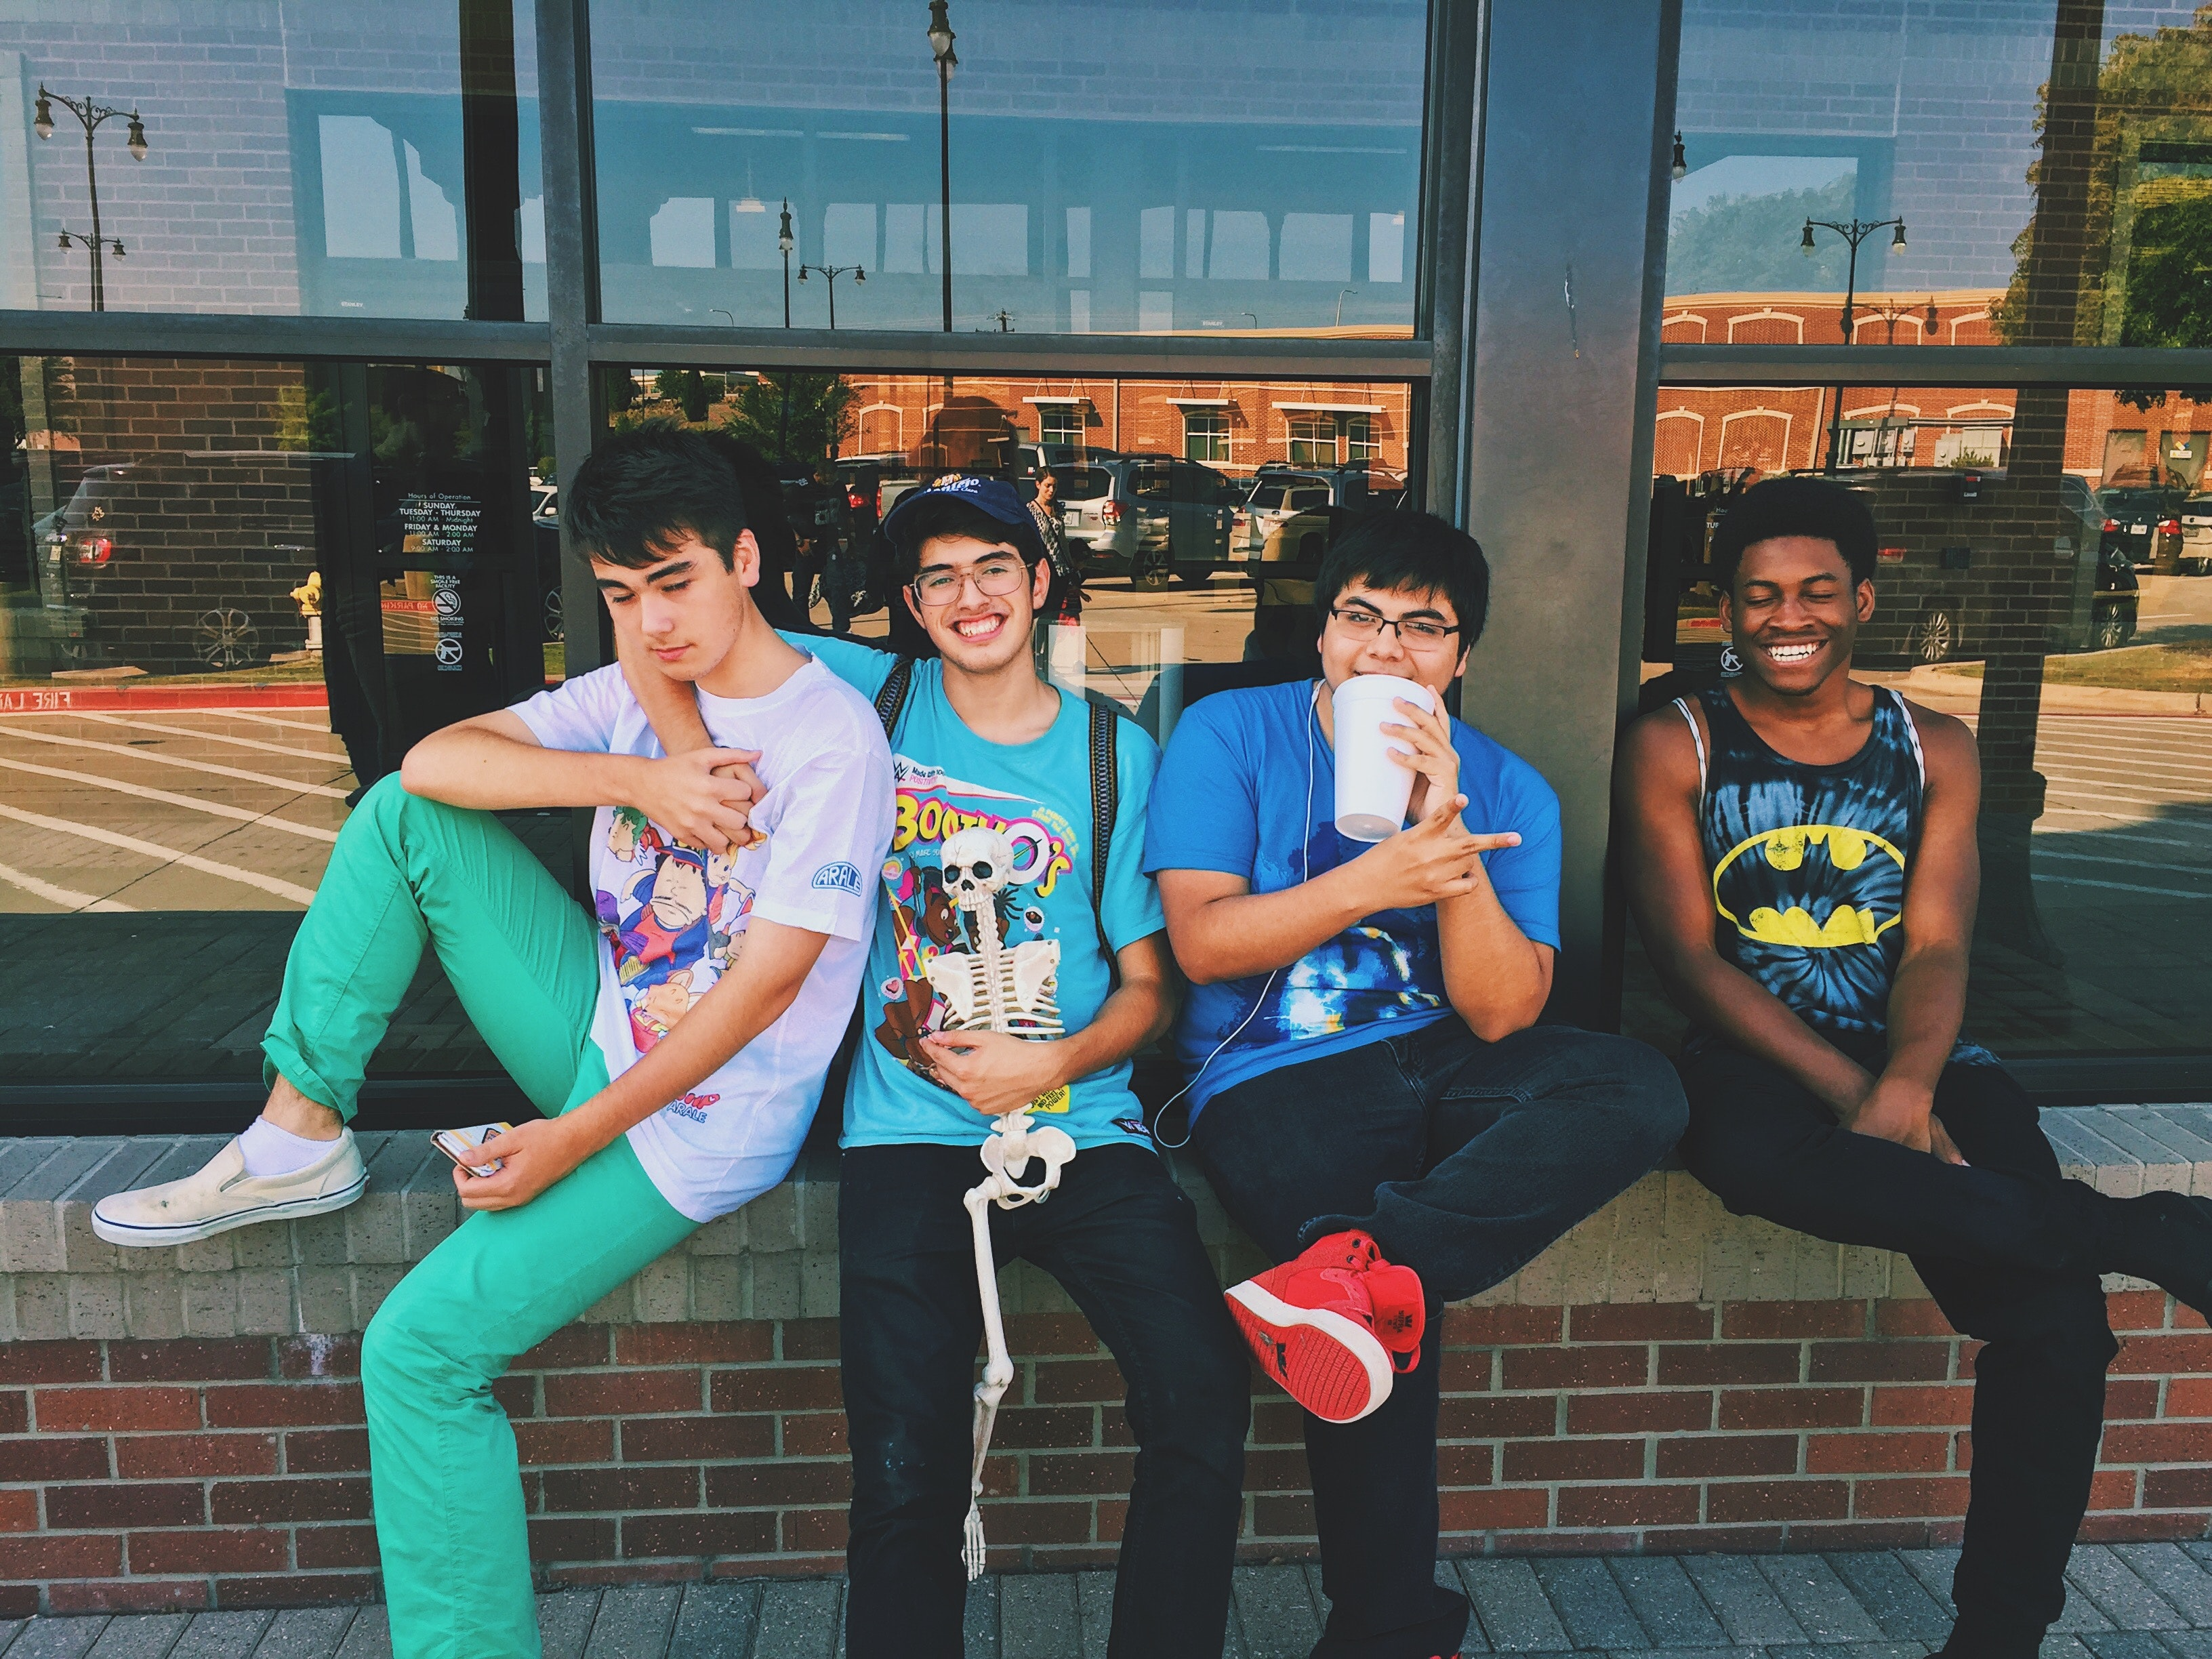 Group of teen boys smiling